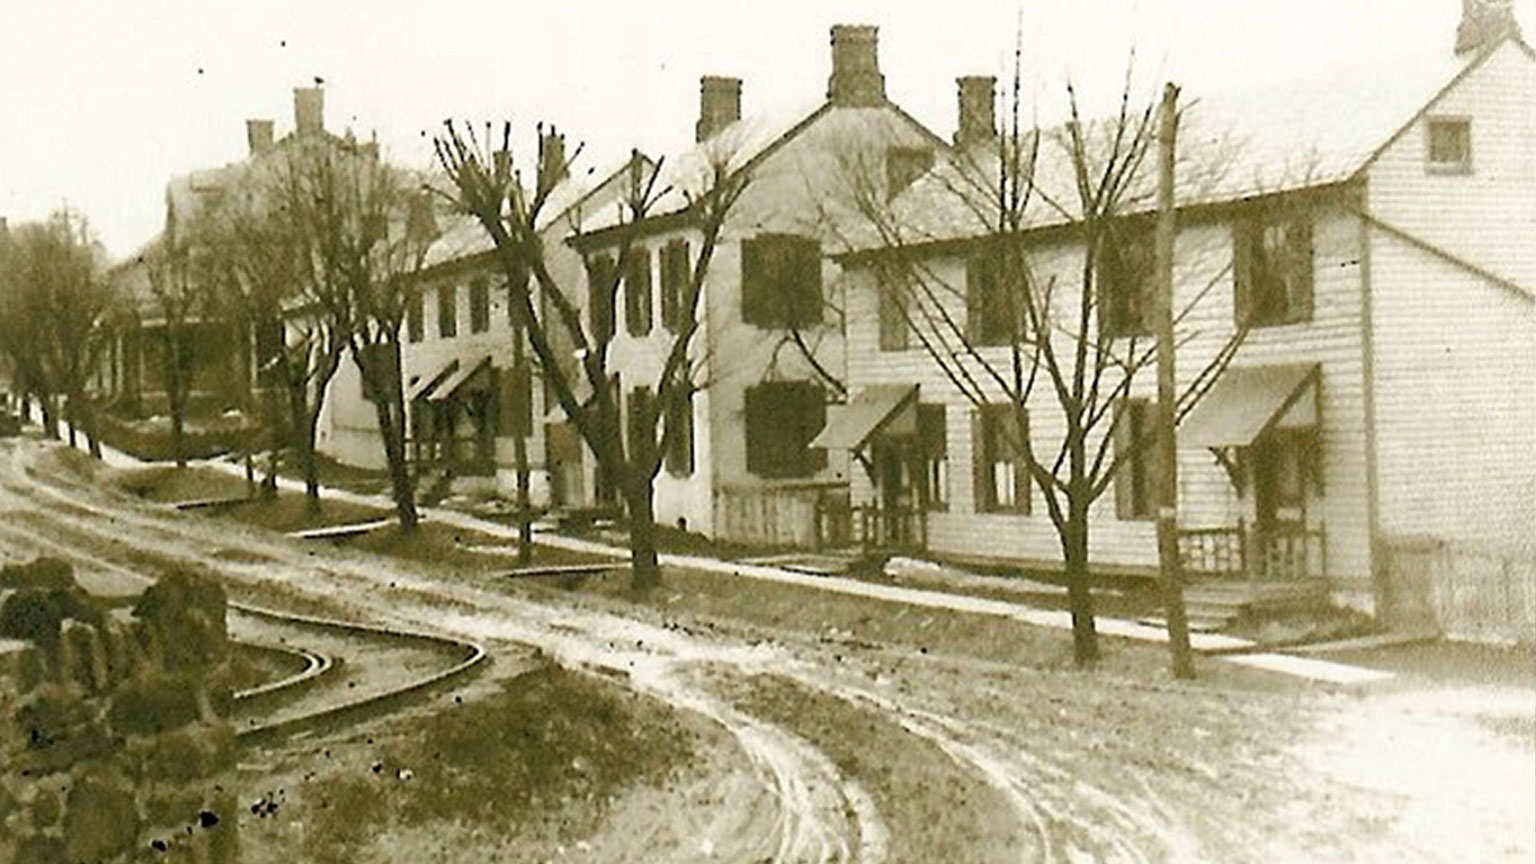 Shimersville was tiny and did not have that many homes.